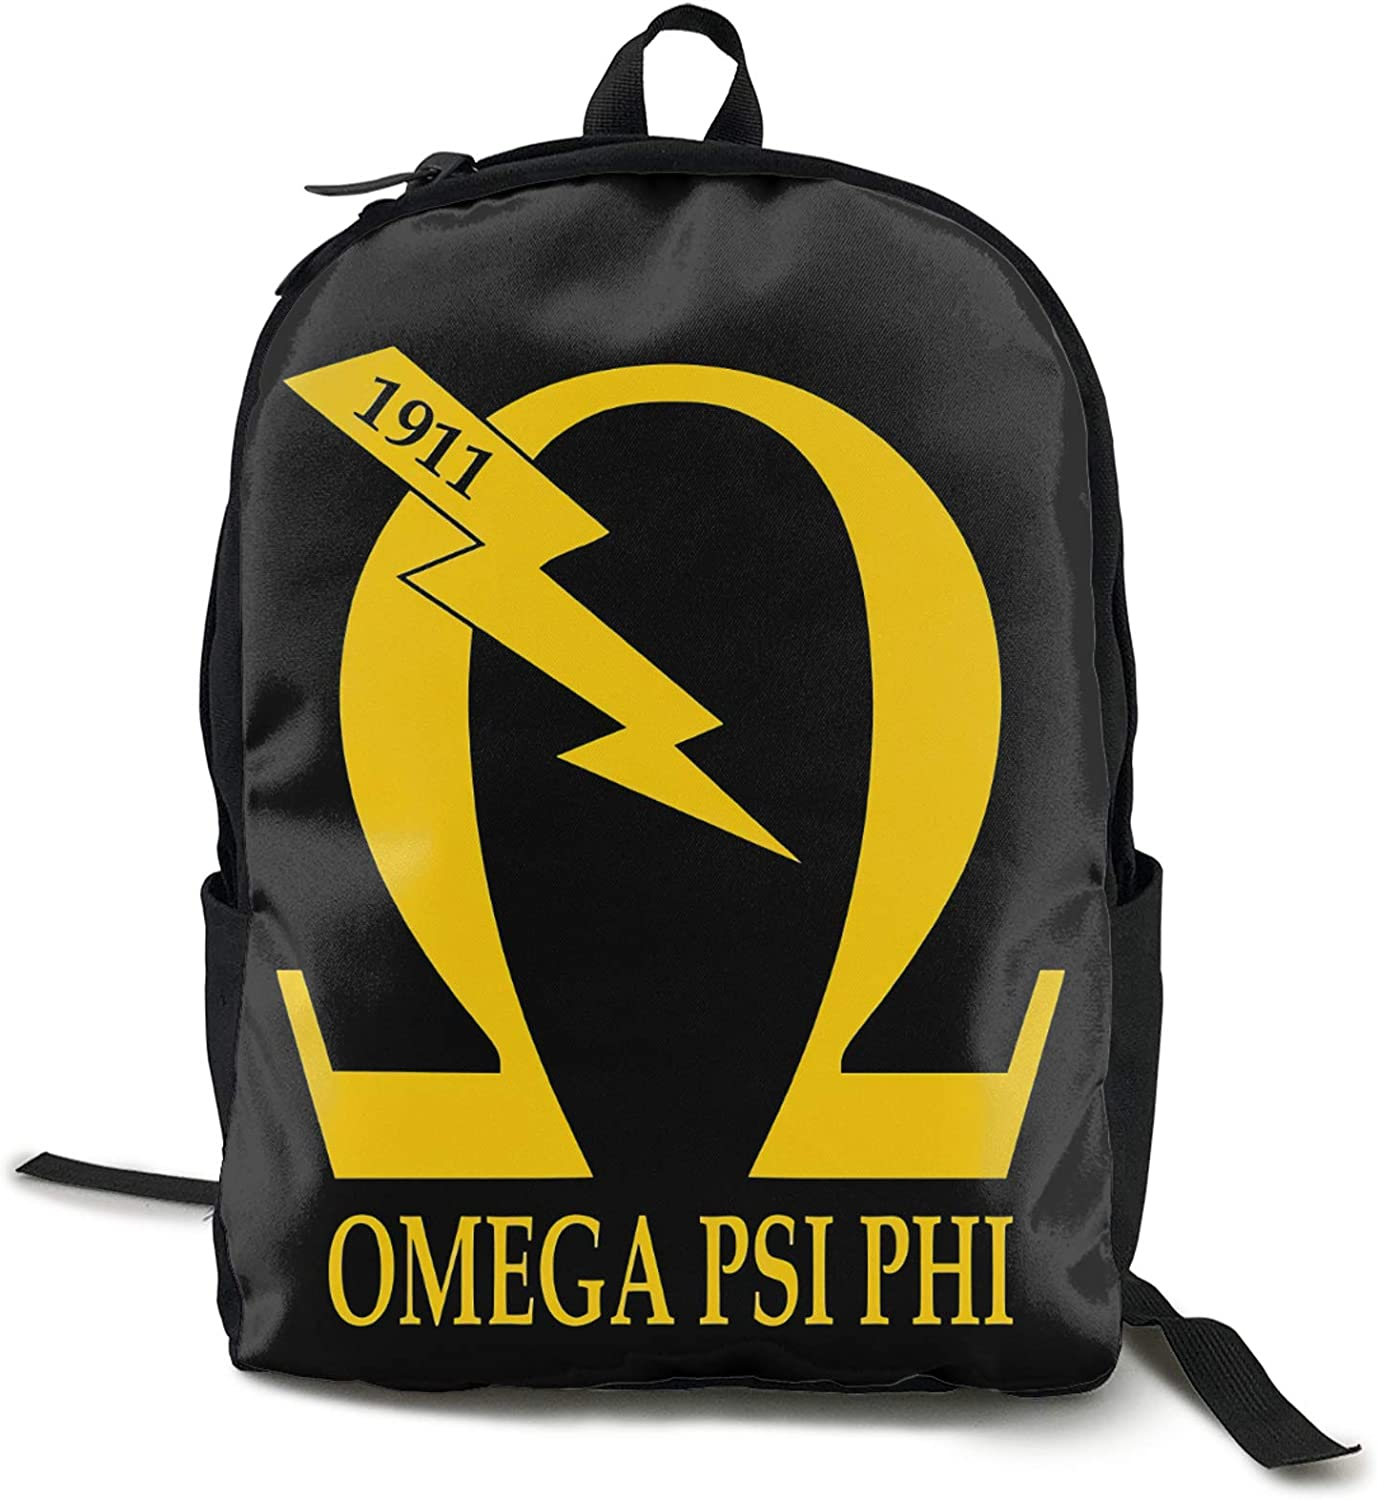 Lanmei Unisex Classic Fashion Omega Psi Phi Casual Backpack Travel Backpack Laptop Backpack